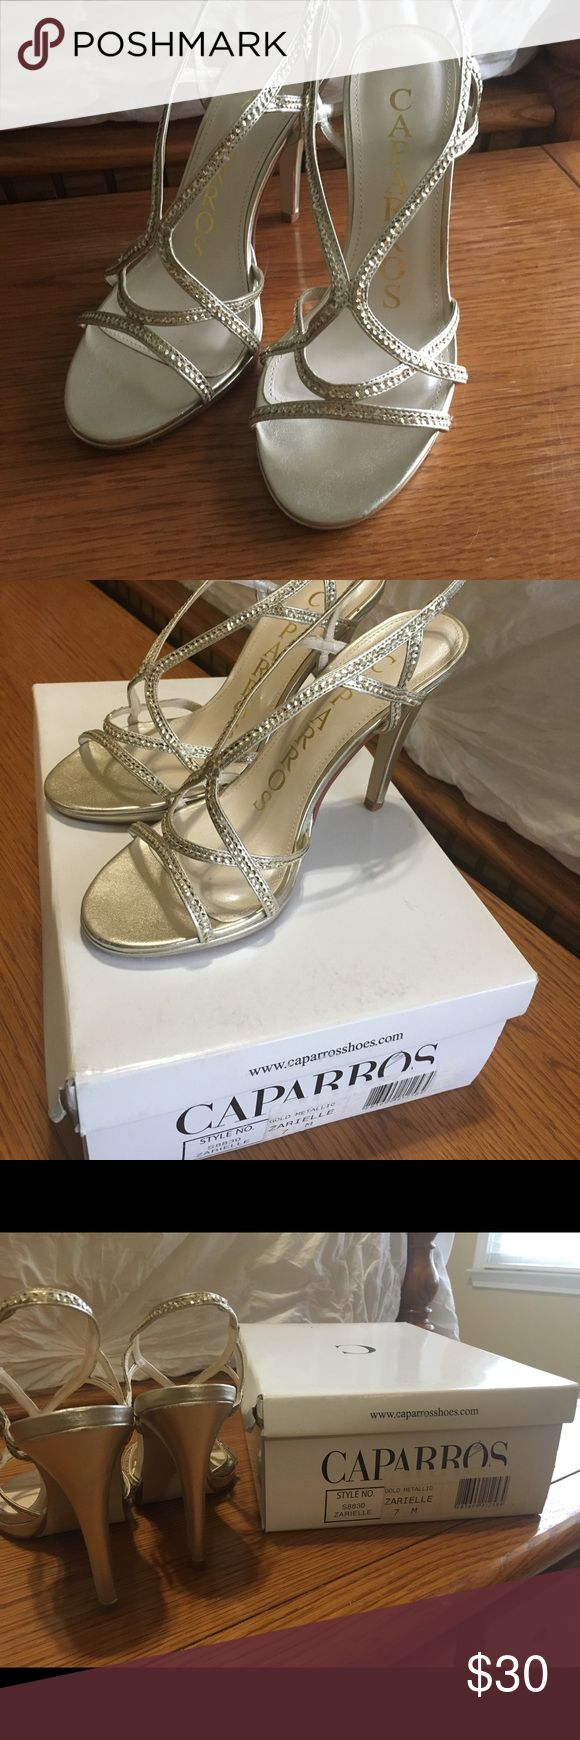 Caparros Gold Heels Bought for my wedding, but never wore them. Size 7, excellent condition. About a 4 in./4 1/2 in. heel. Stretchy strap at heel. Great for a wedding or formal party! Caparros Shoes Heels